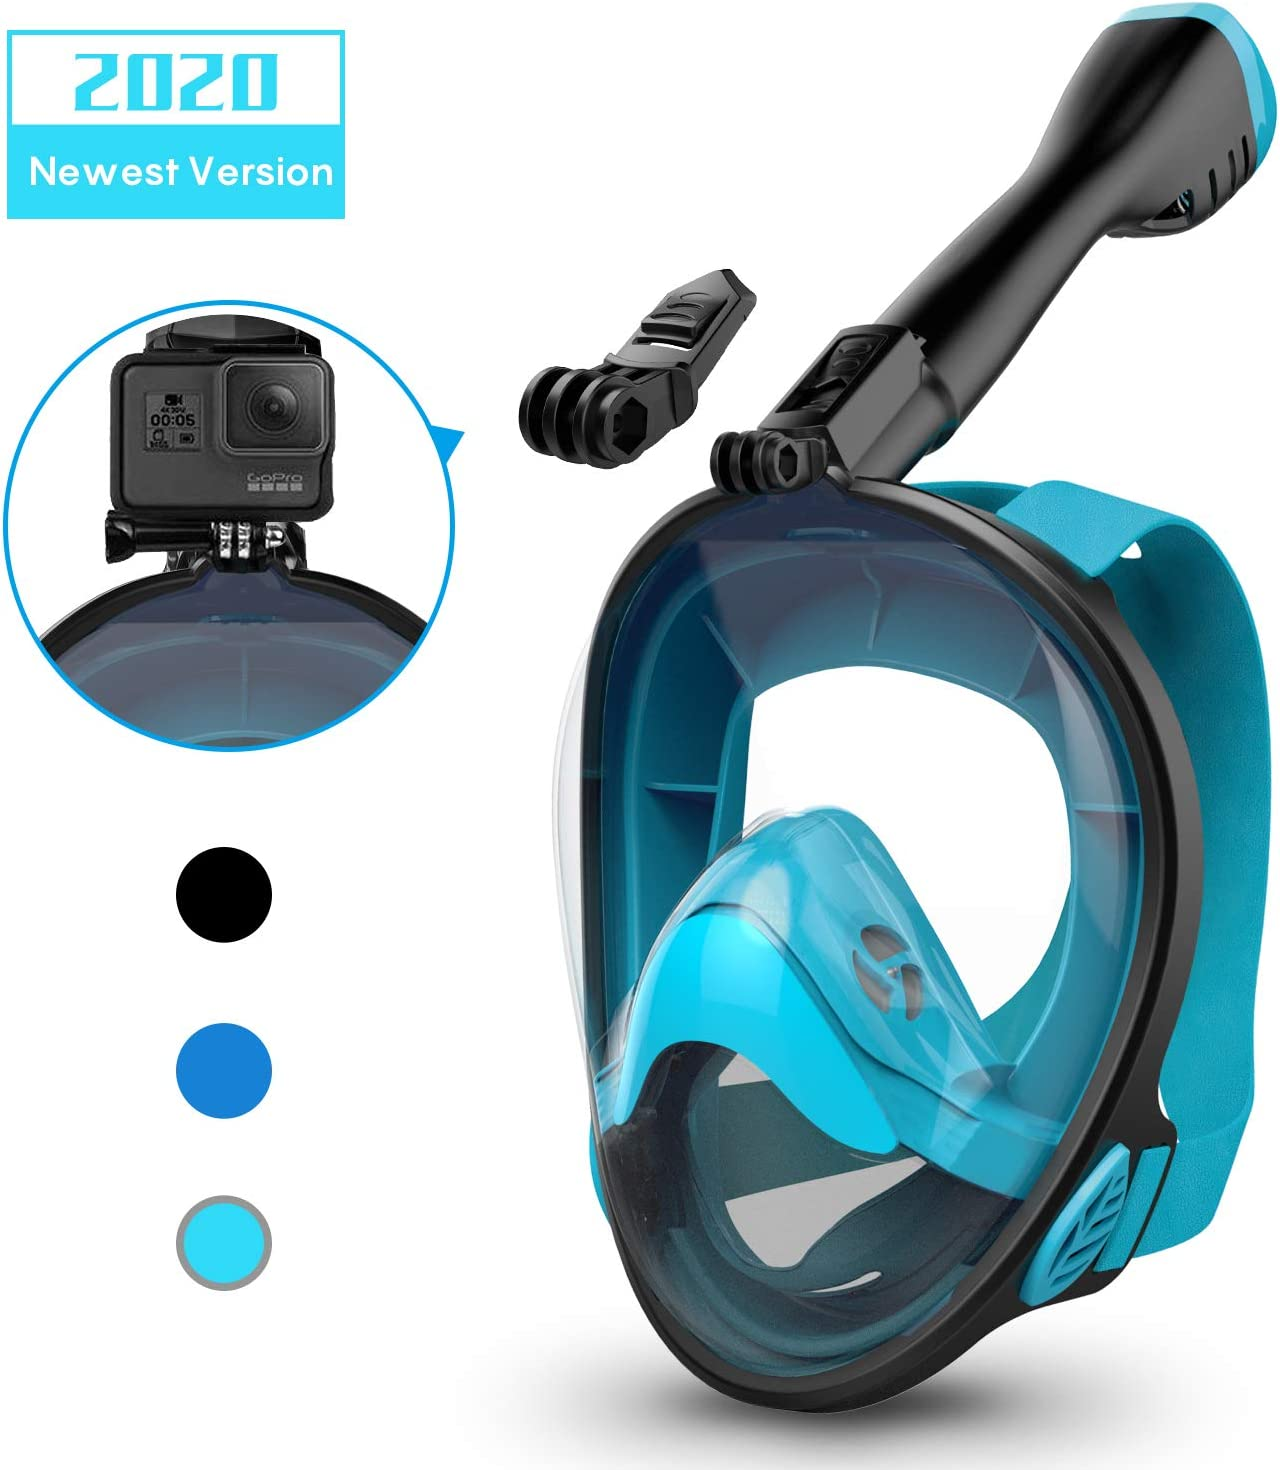 Aegend Full Face Snorkel Mask with Upgraded Safety Breathing System, 180°Panoramic Larger View Snorkel Set Anti-Fog Anti-Leak, Detachable Camera Mount, Fit for Adult Youth Kids